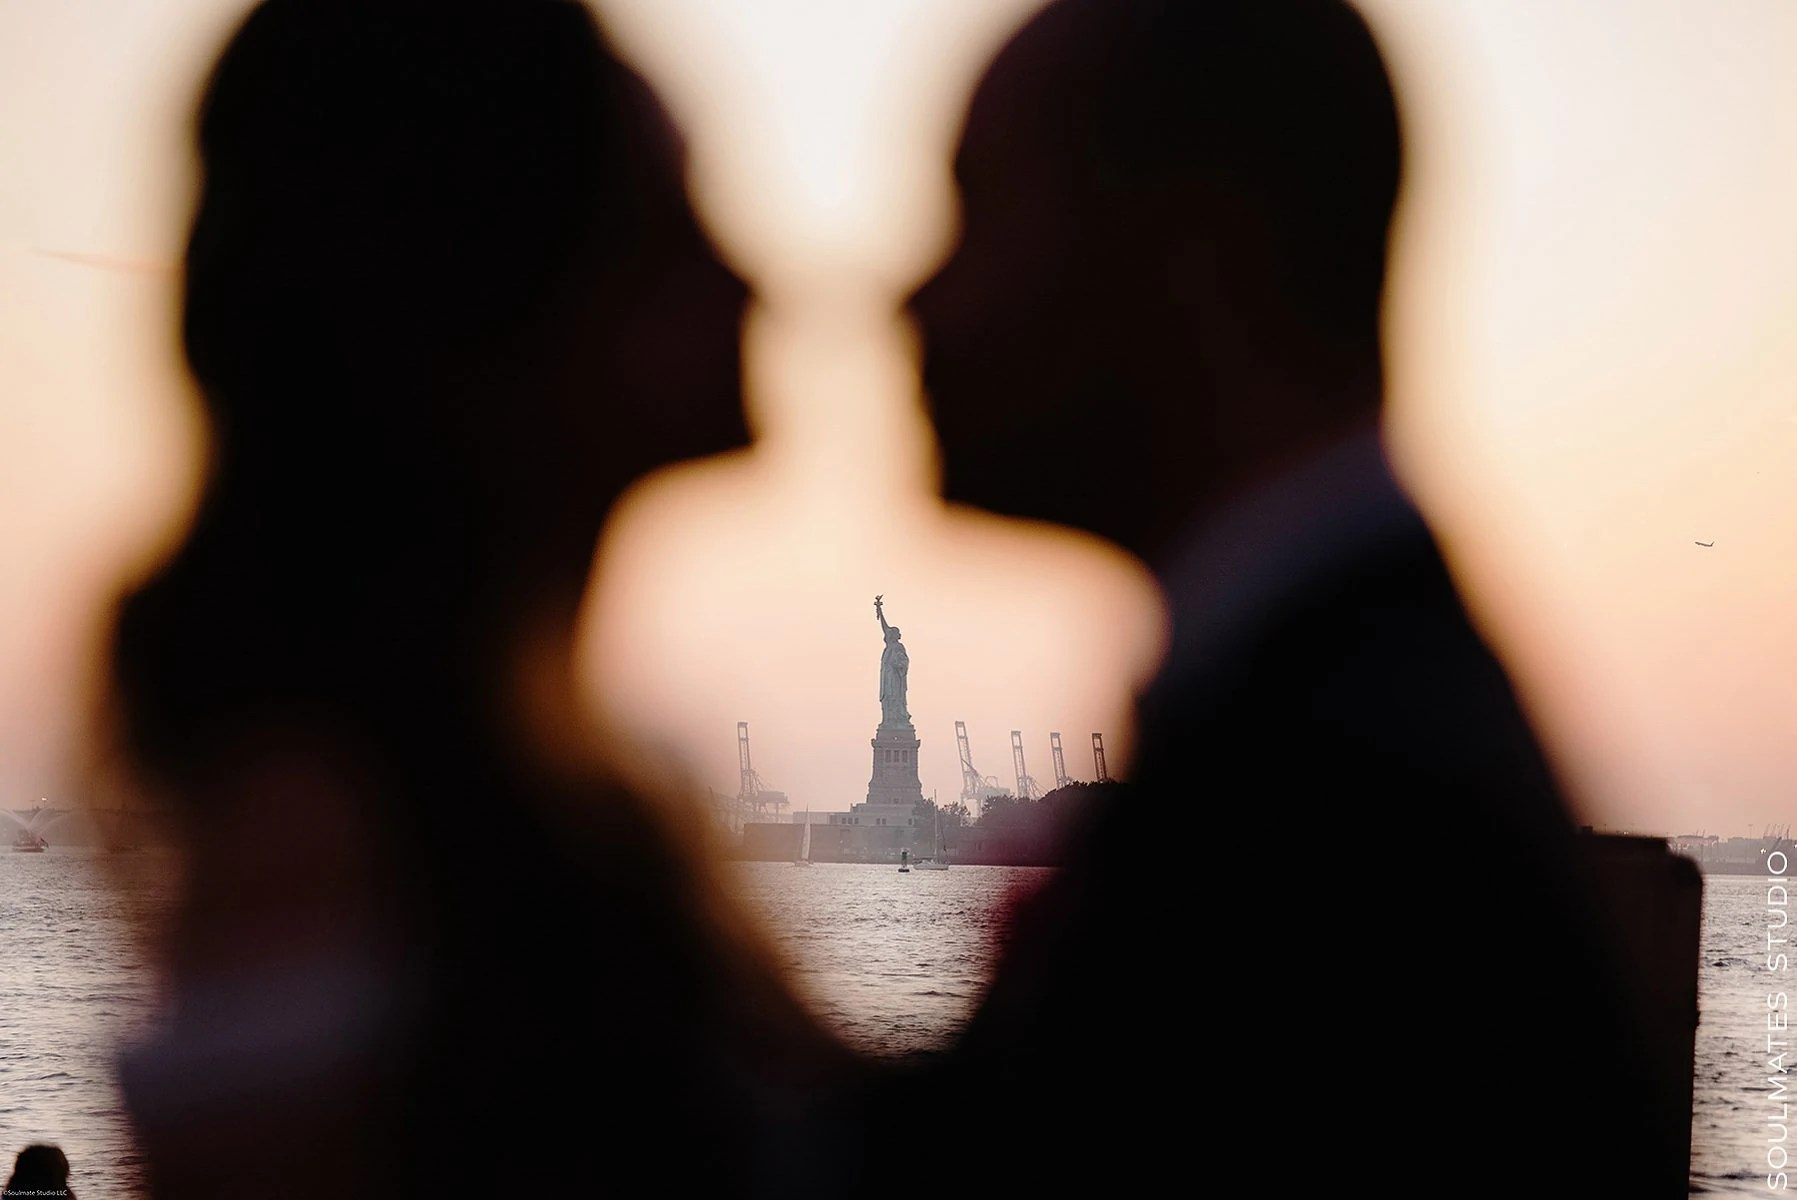 Manhattan Battery Garden City Wedding Silhouette Bride and Groom Portrait with Statue of Liberty